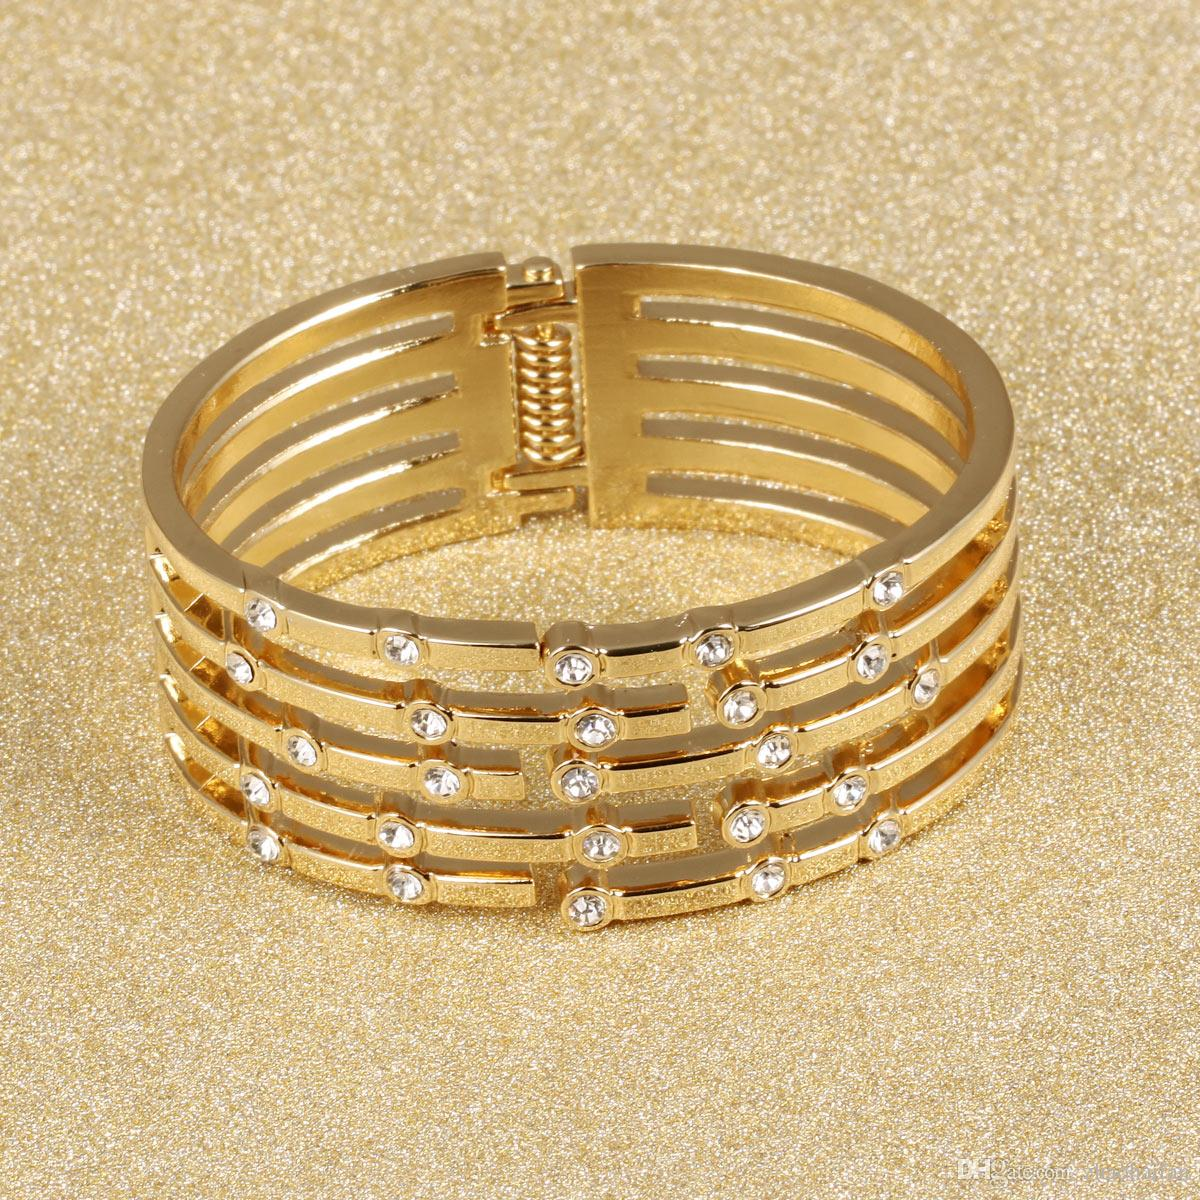 women amp woman cristo for yellow mc en gold white monte bracelets bracelet